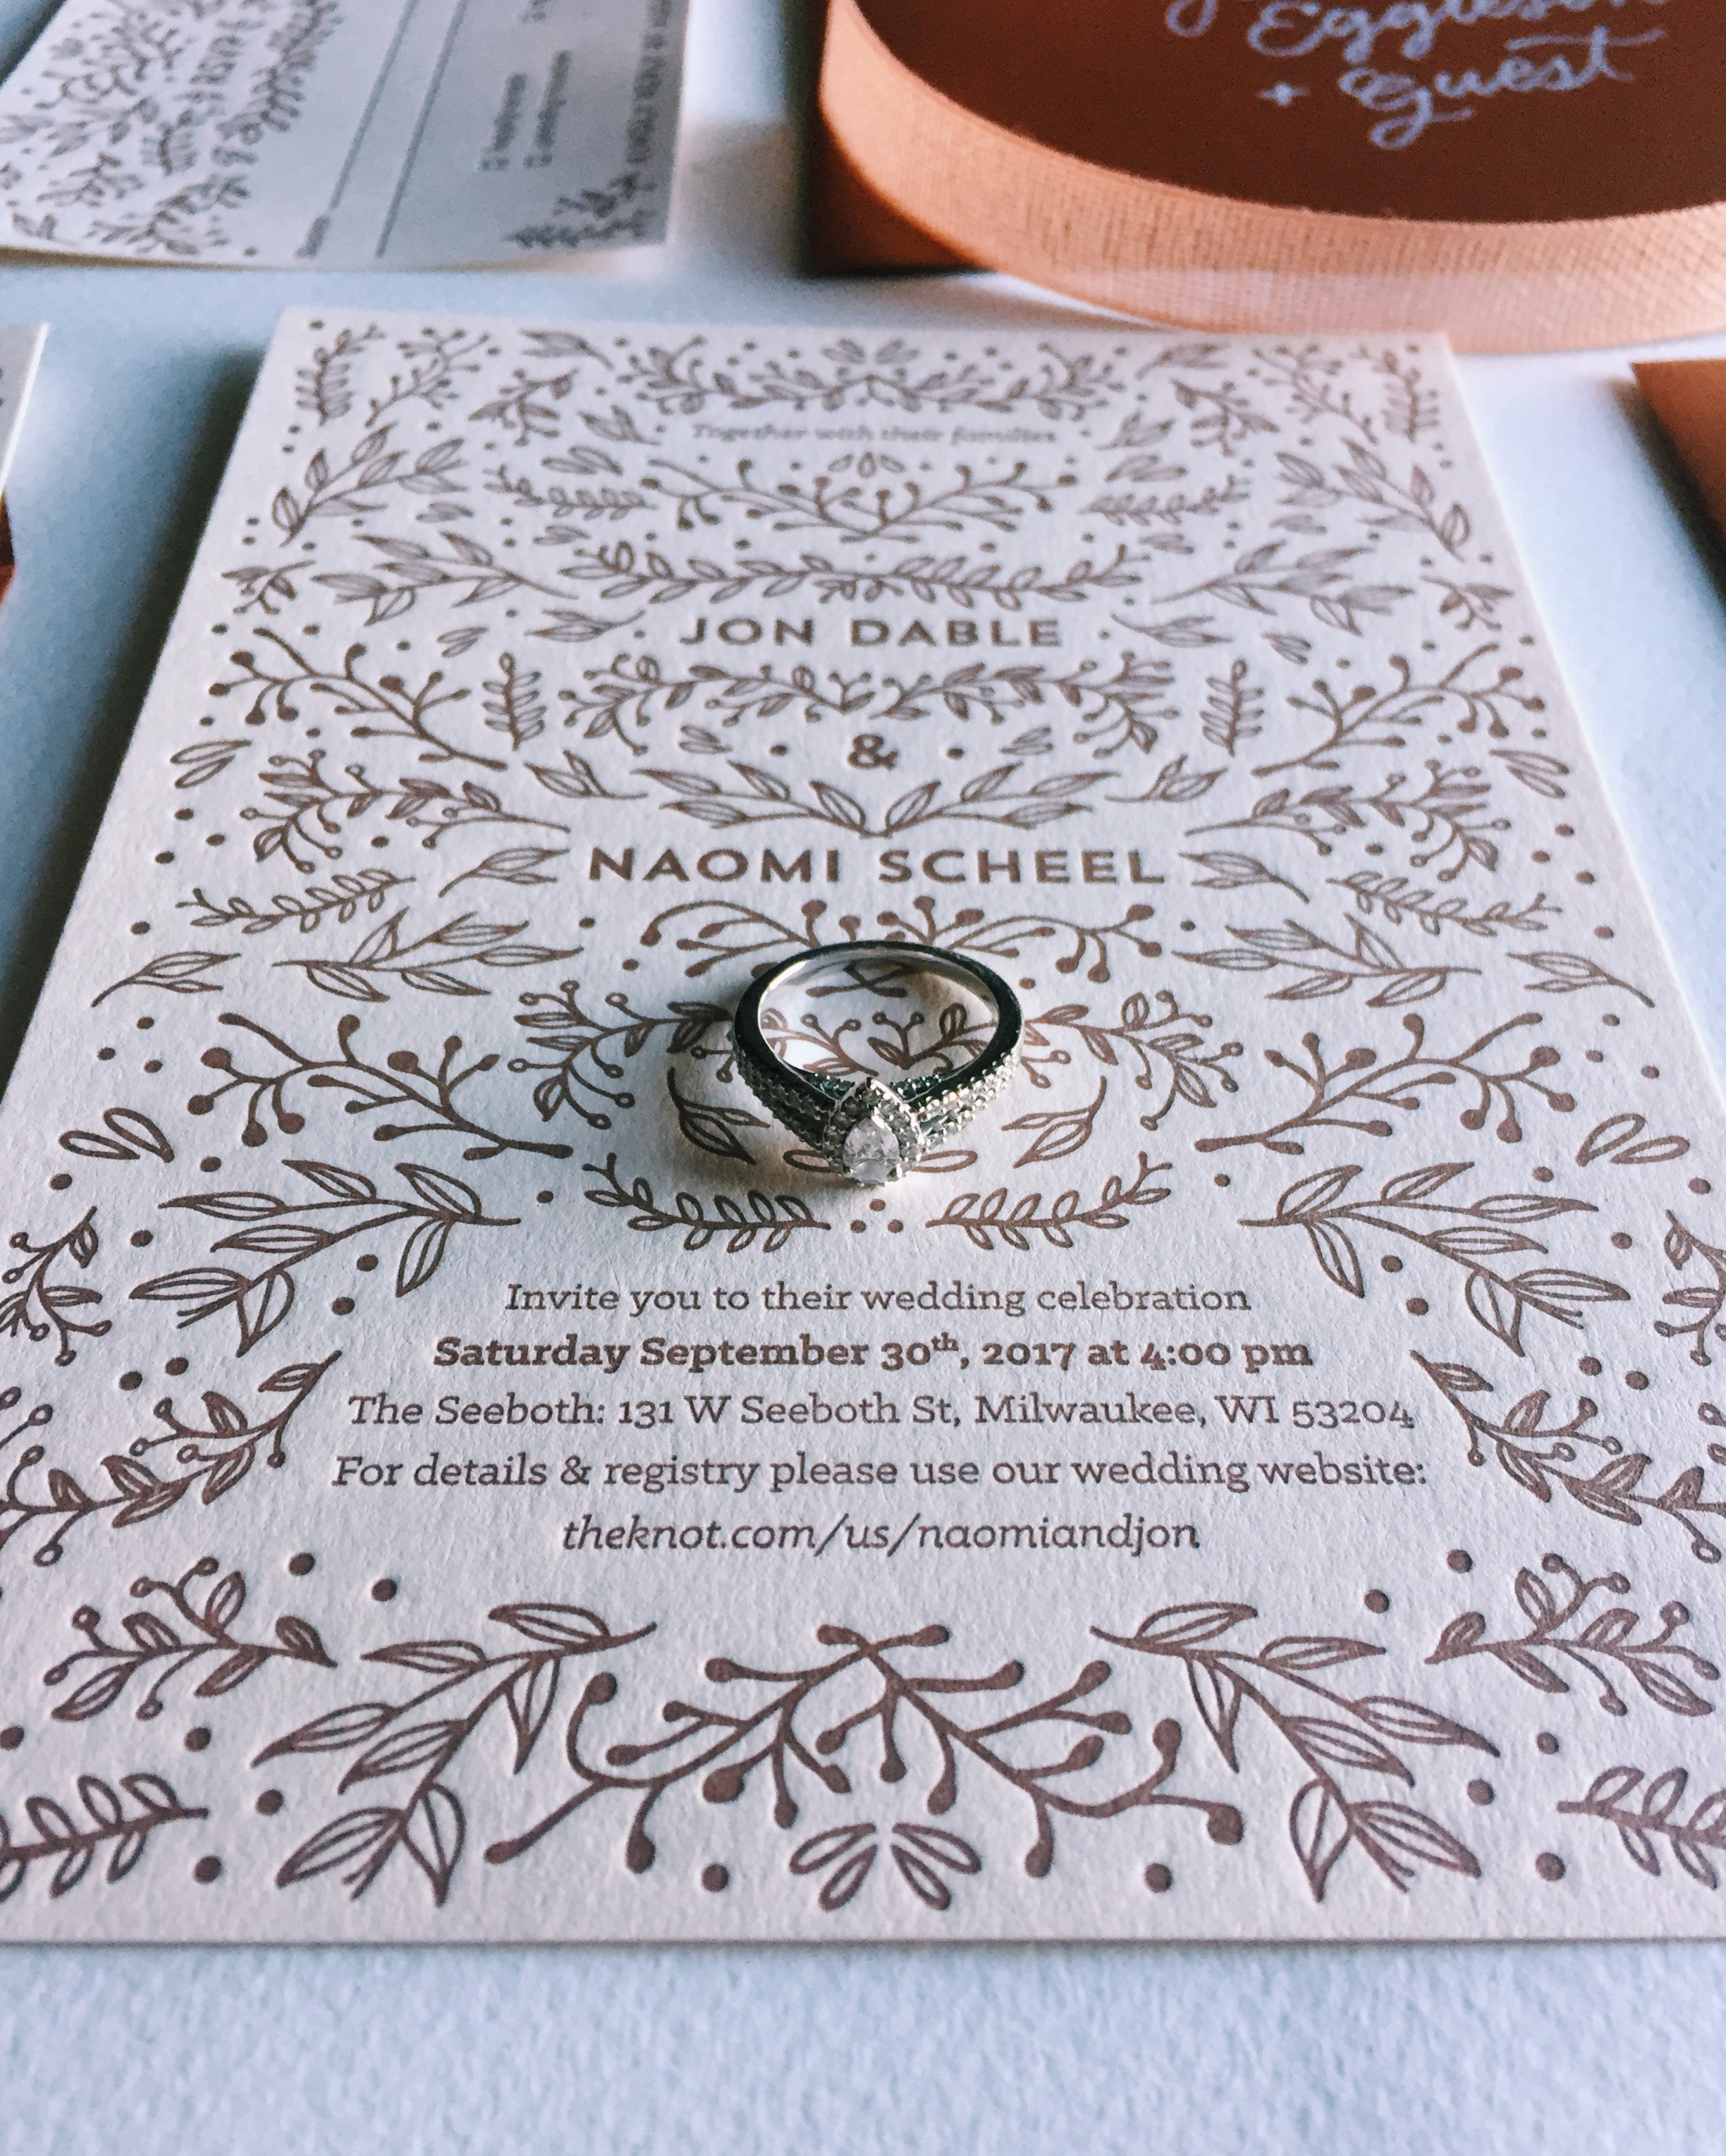 naomipaperco-wedding-invitation10.JPG